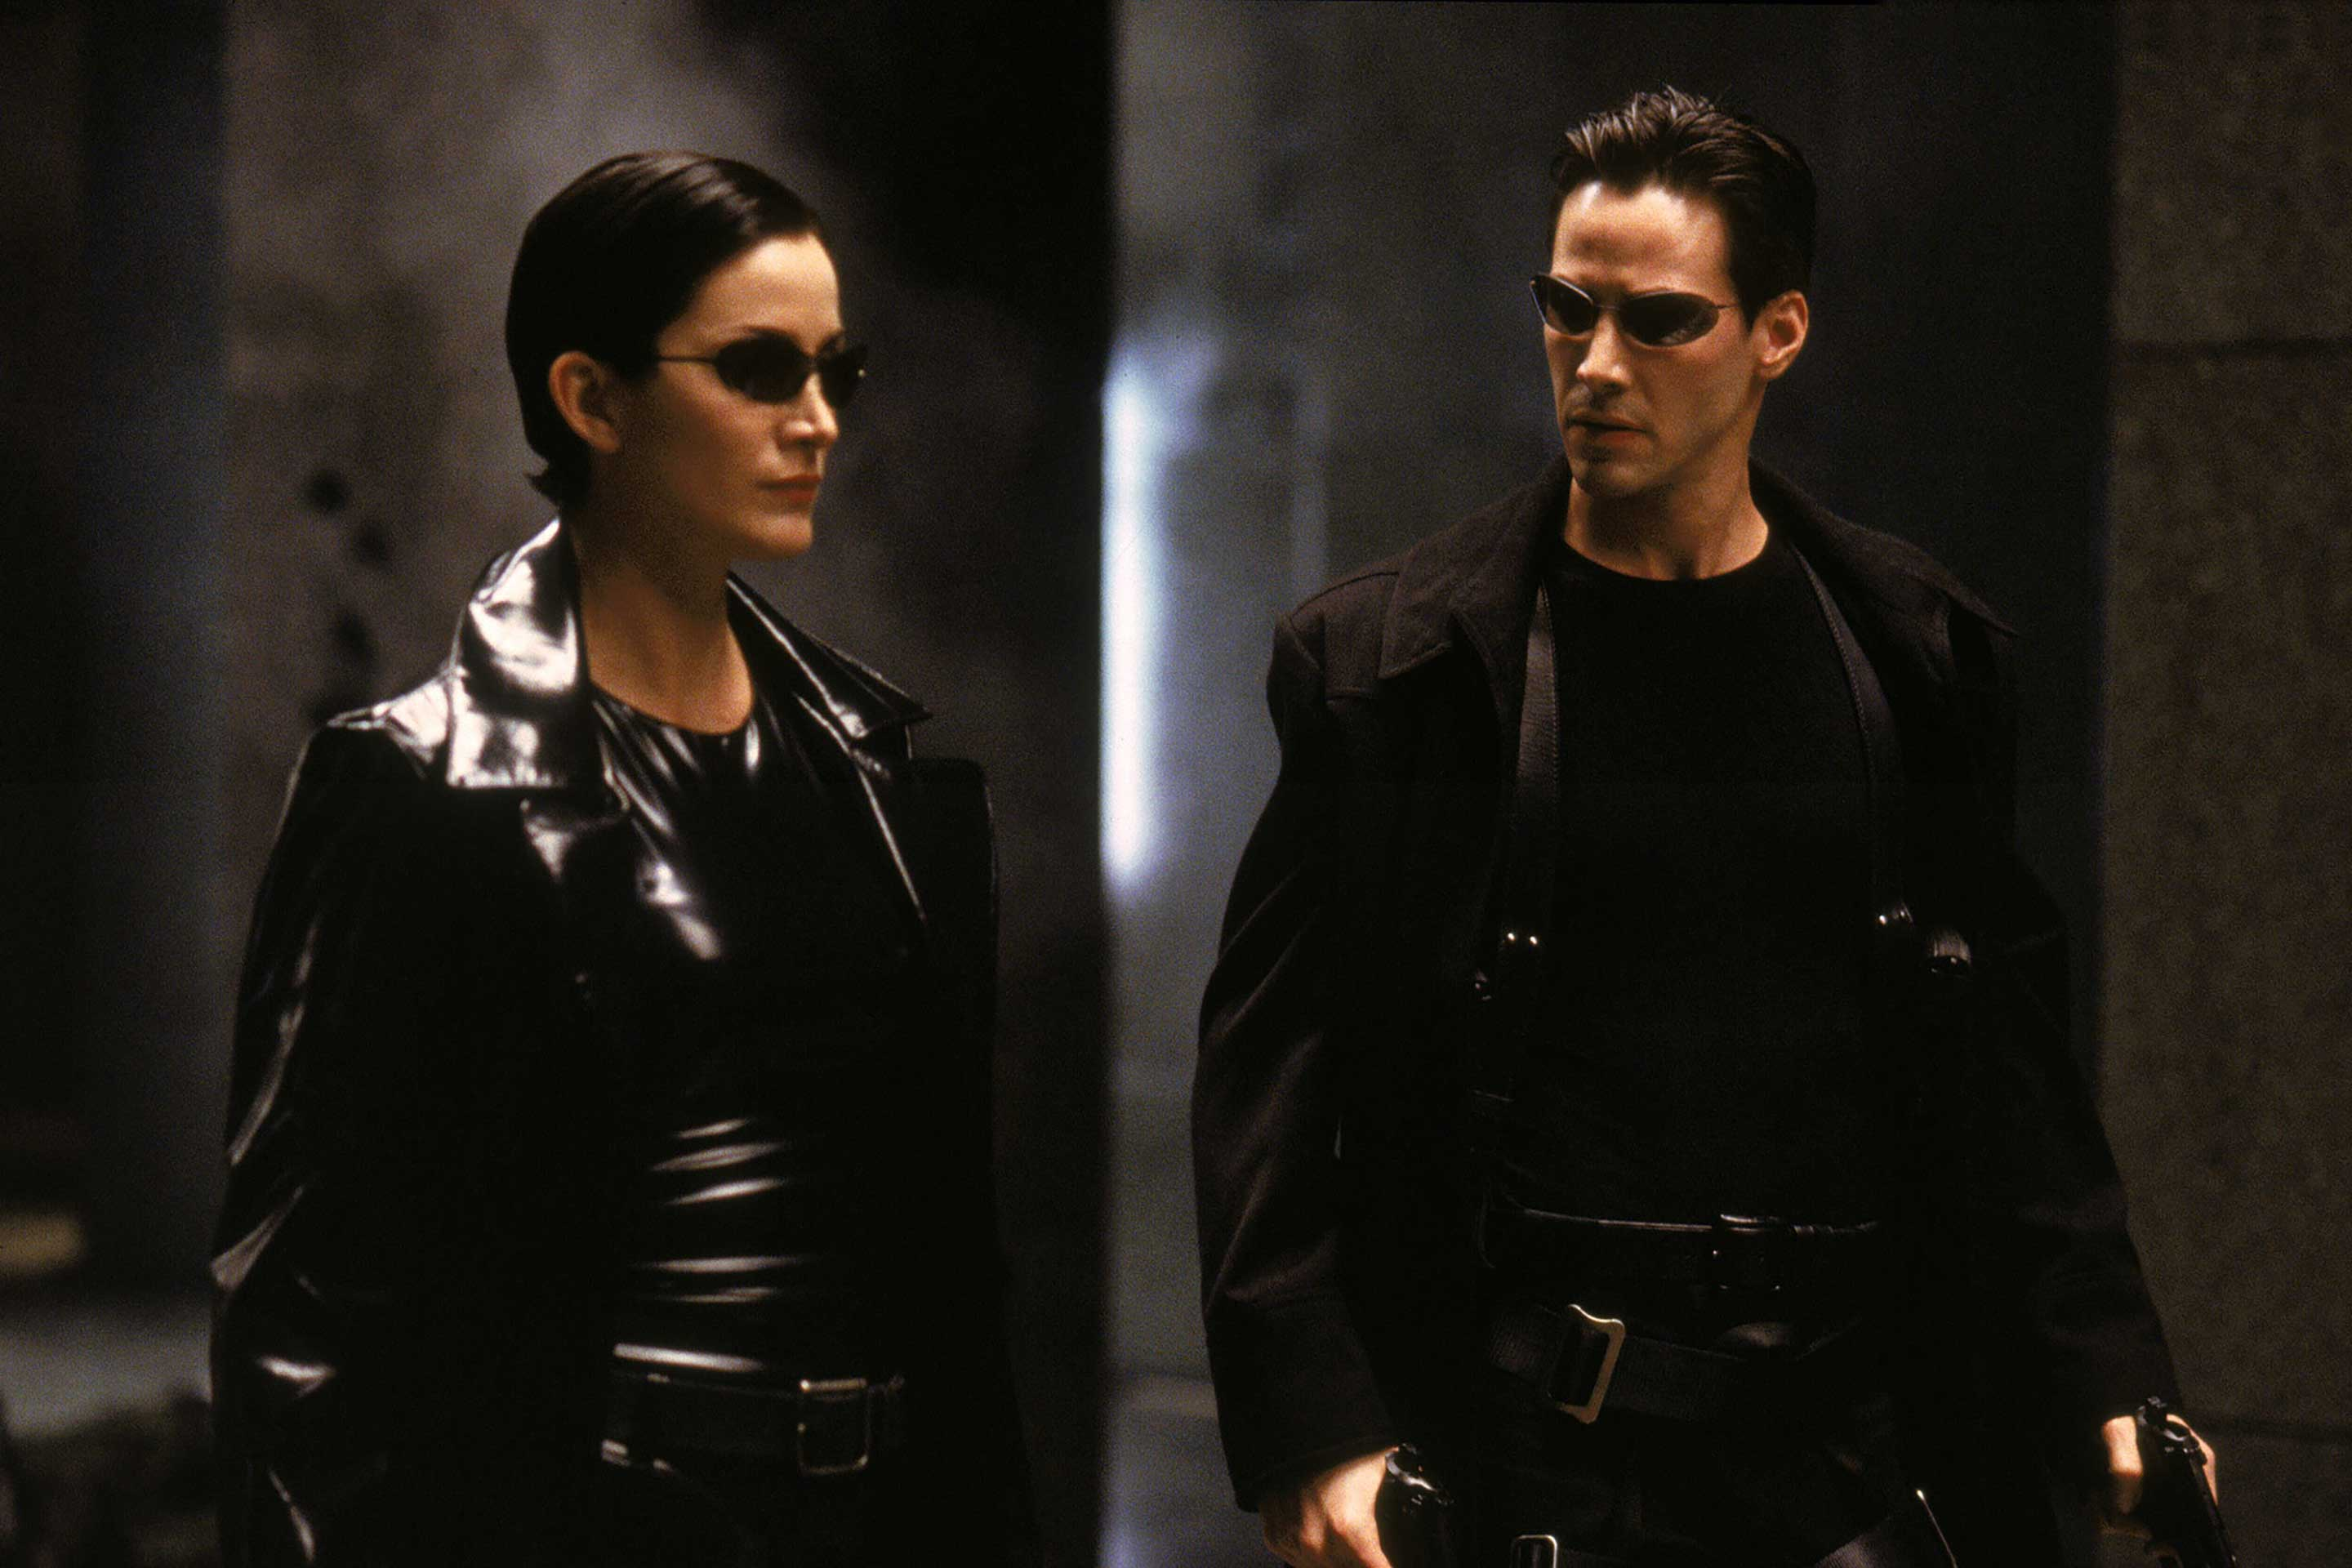 the matrix-keanu reeves-Carrie-Anne Moss